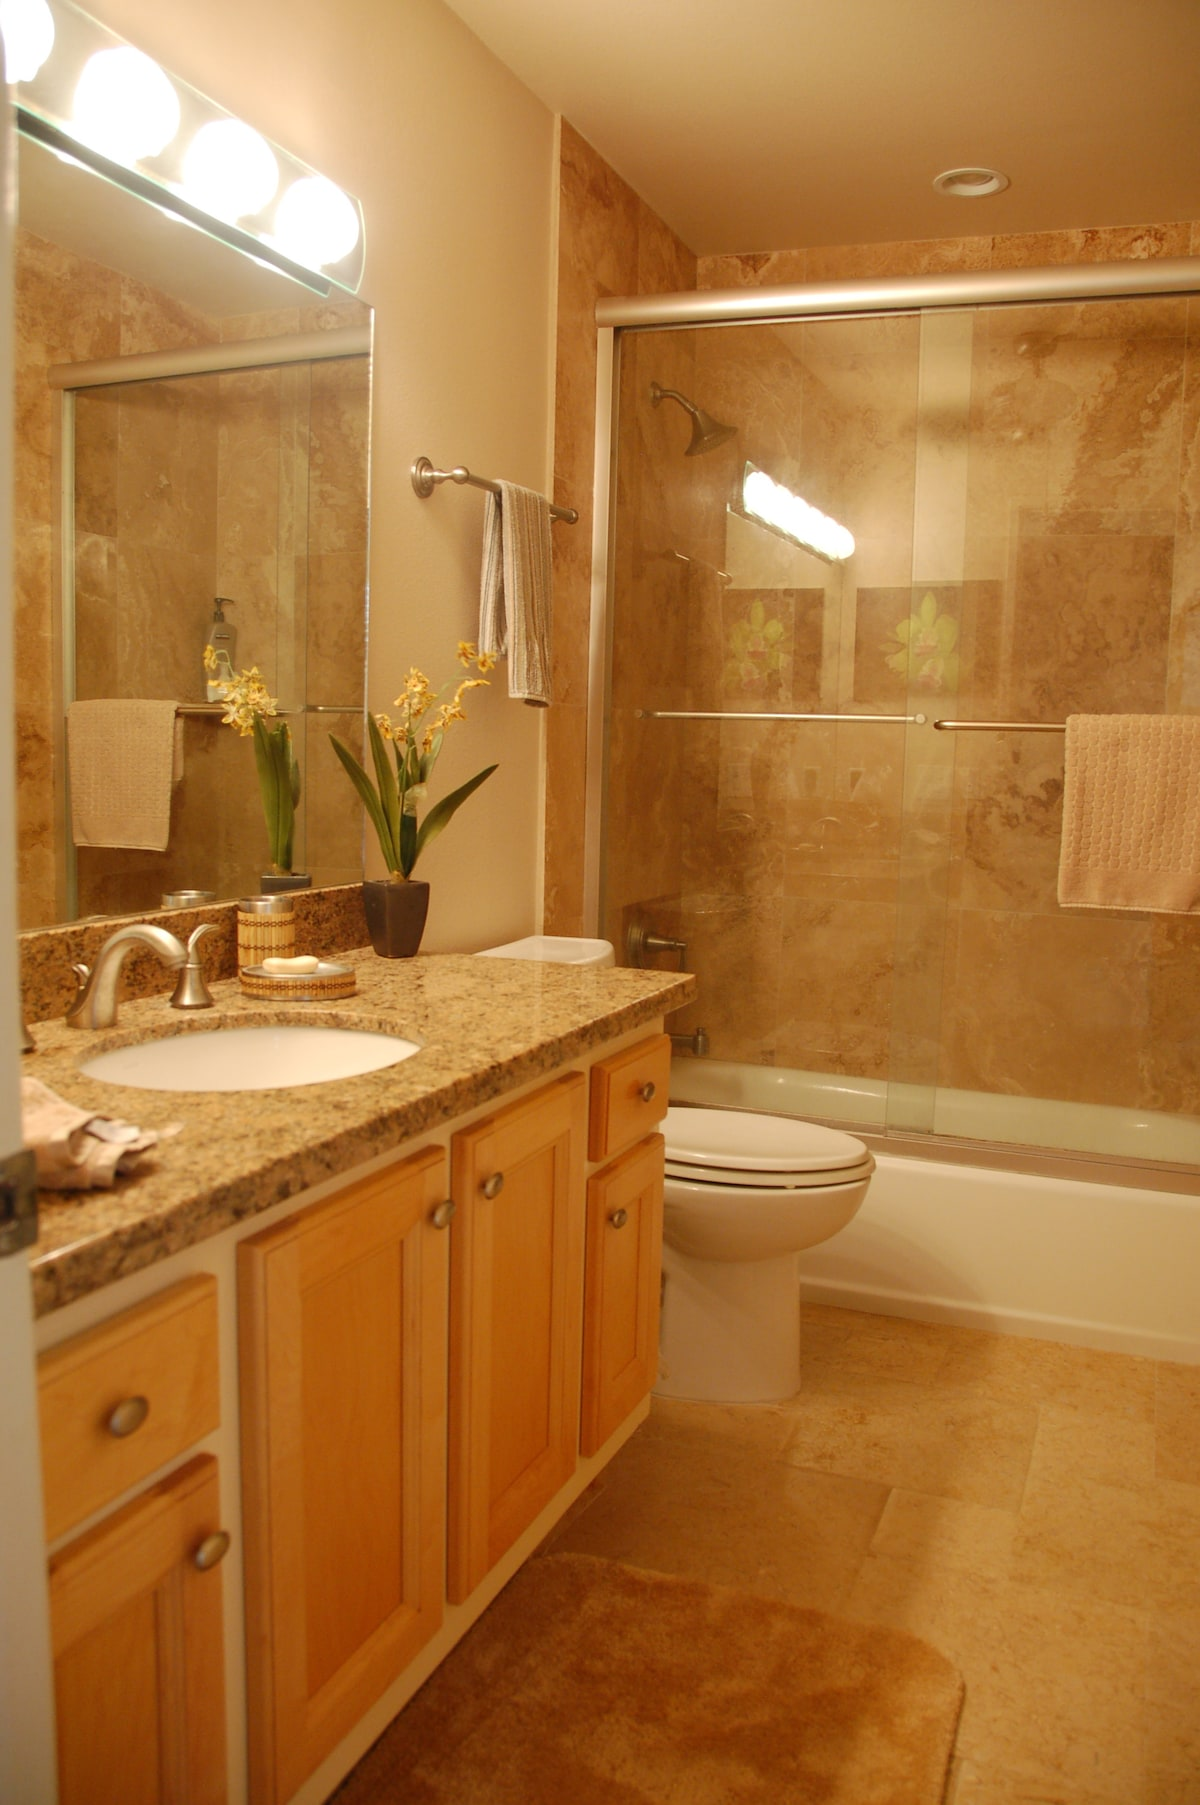 Beautful redone second bathroom with traventine tile and granite counters.  Also ceiling fans to cool you!! Lots lush towels plus shampoo and conditioner... Bath soaps as well.  Hair dryer...